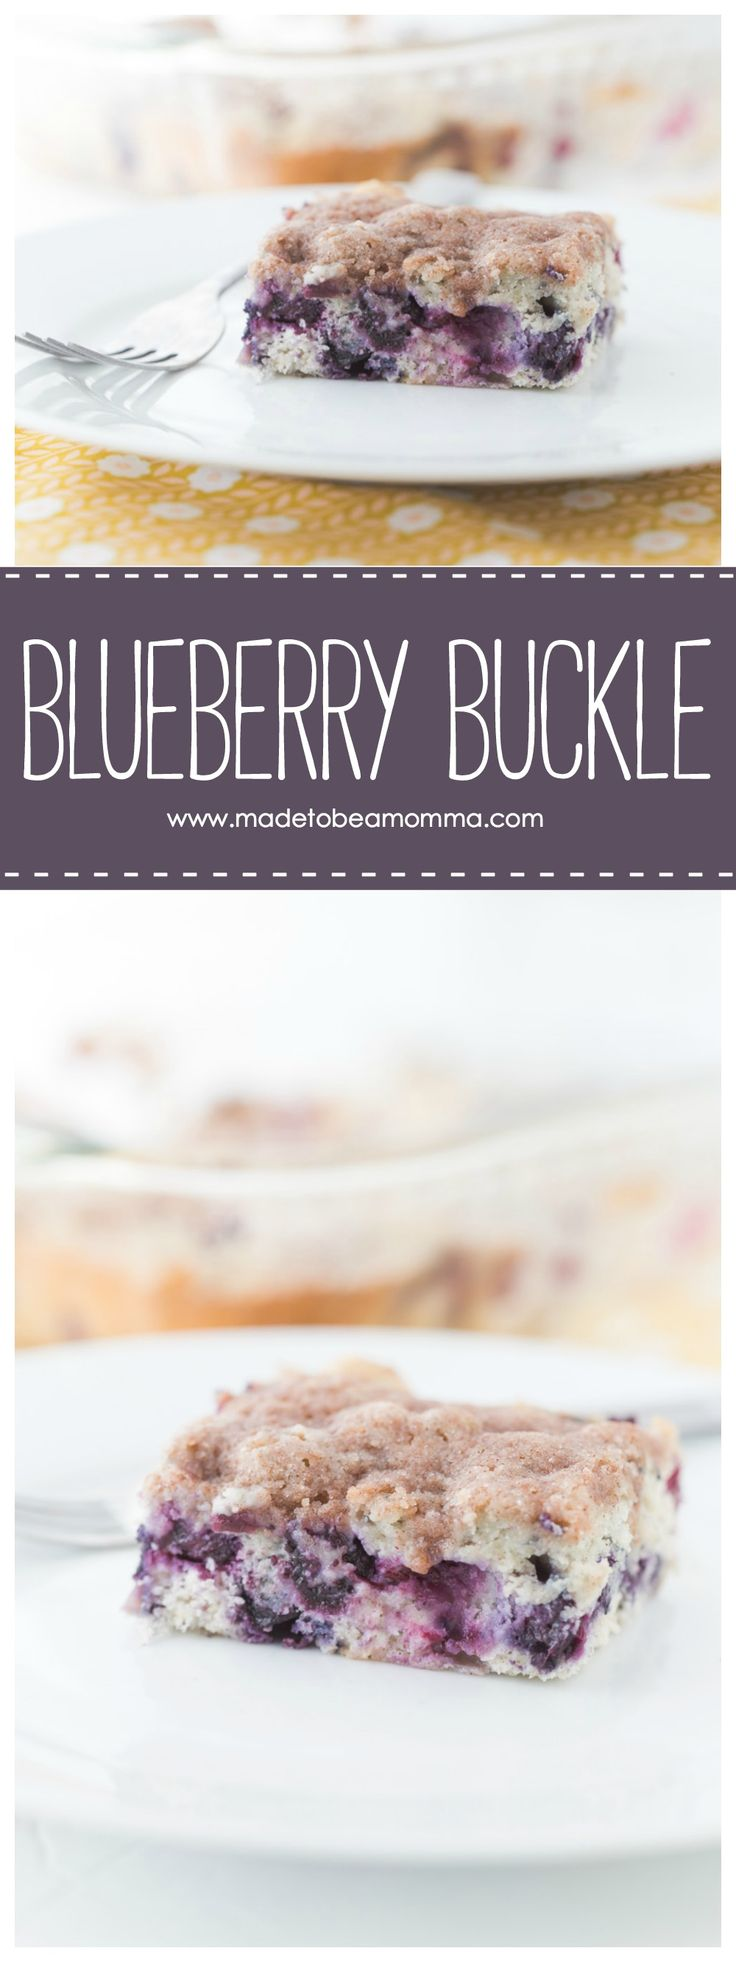 Blueberry Buckle cake is the perfect dessert paired with ice cream on a hot day!